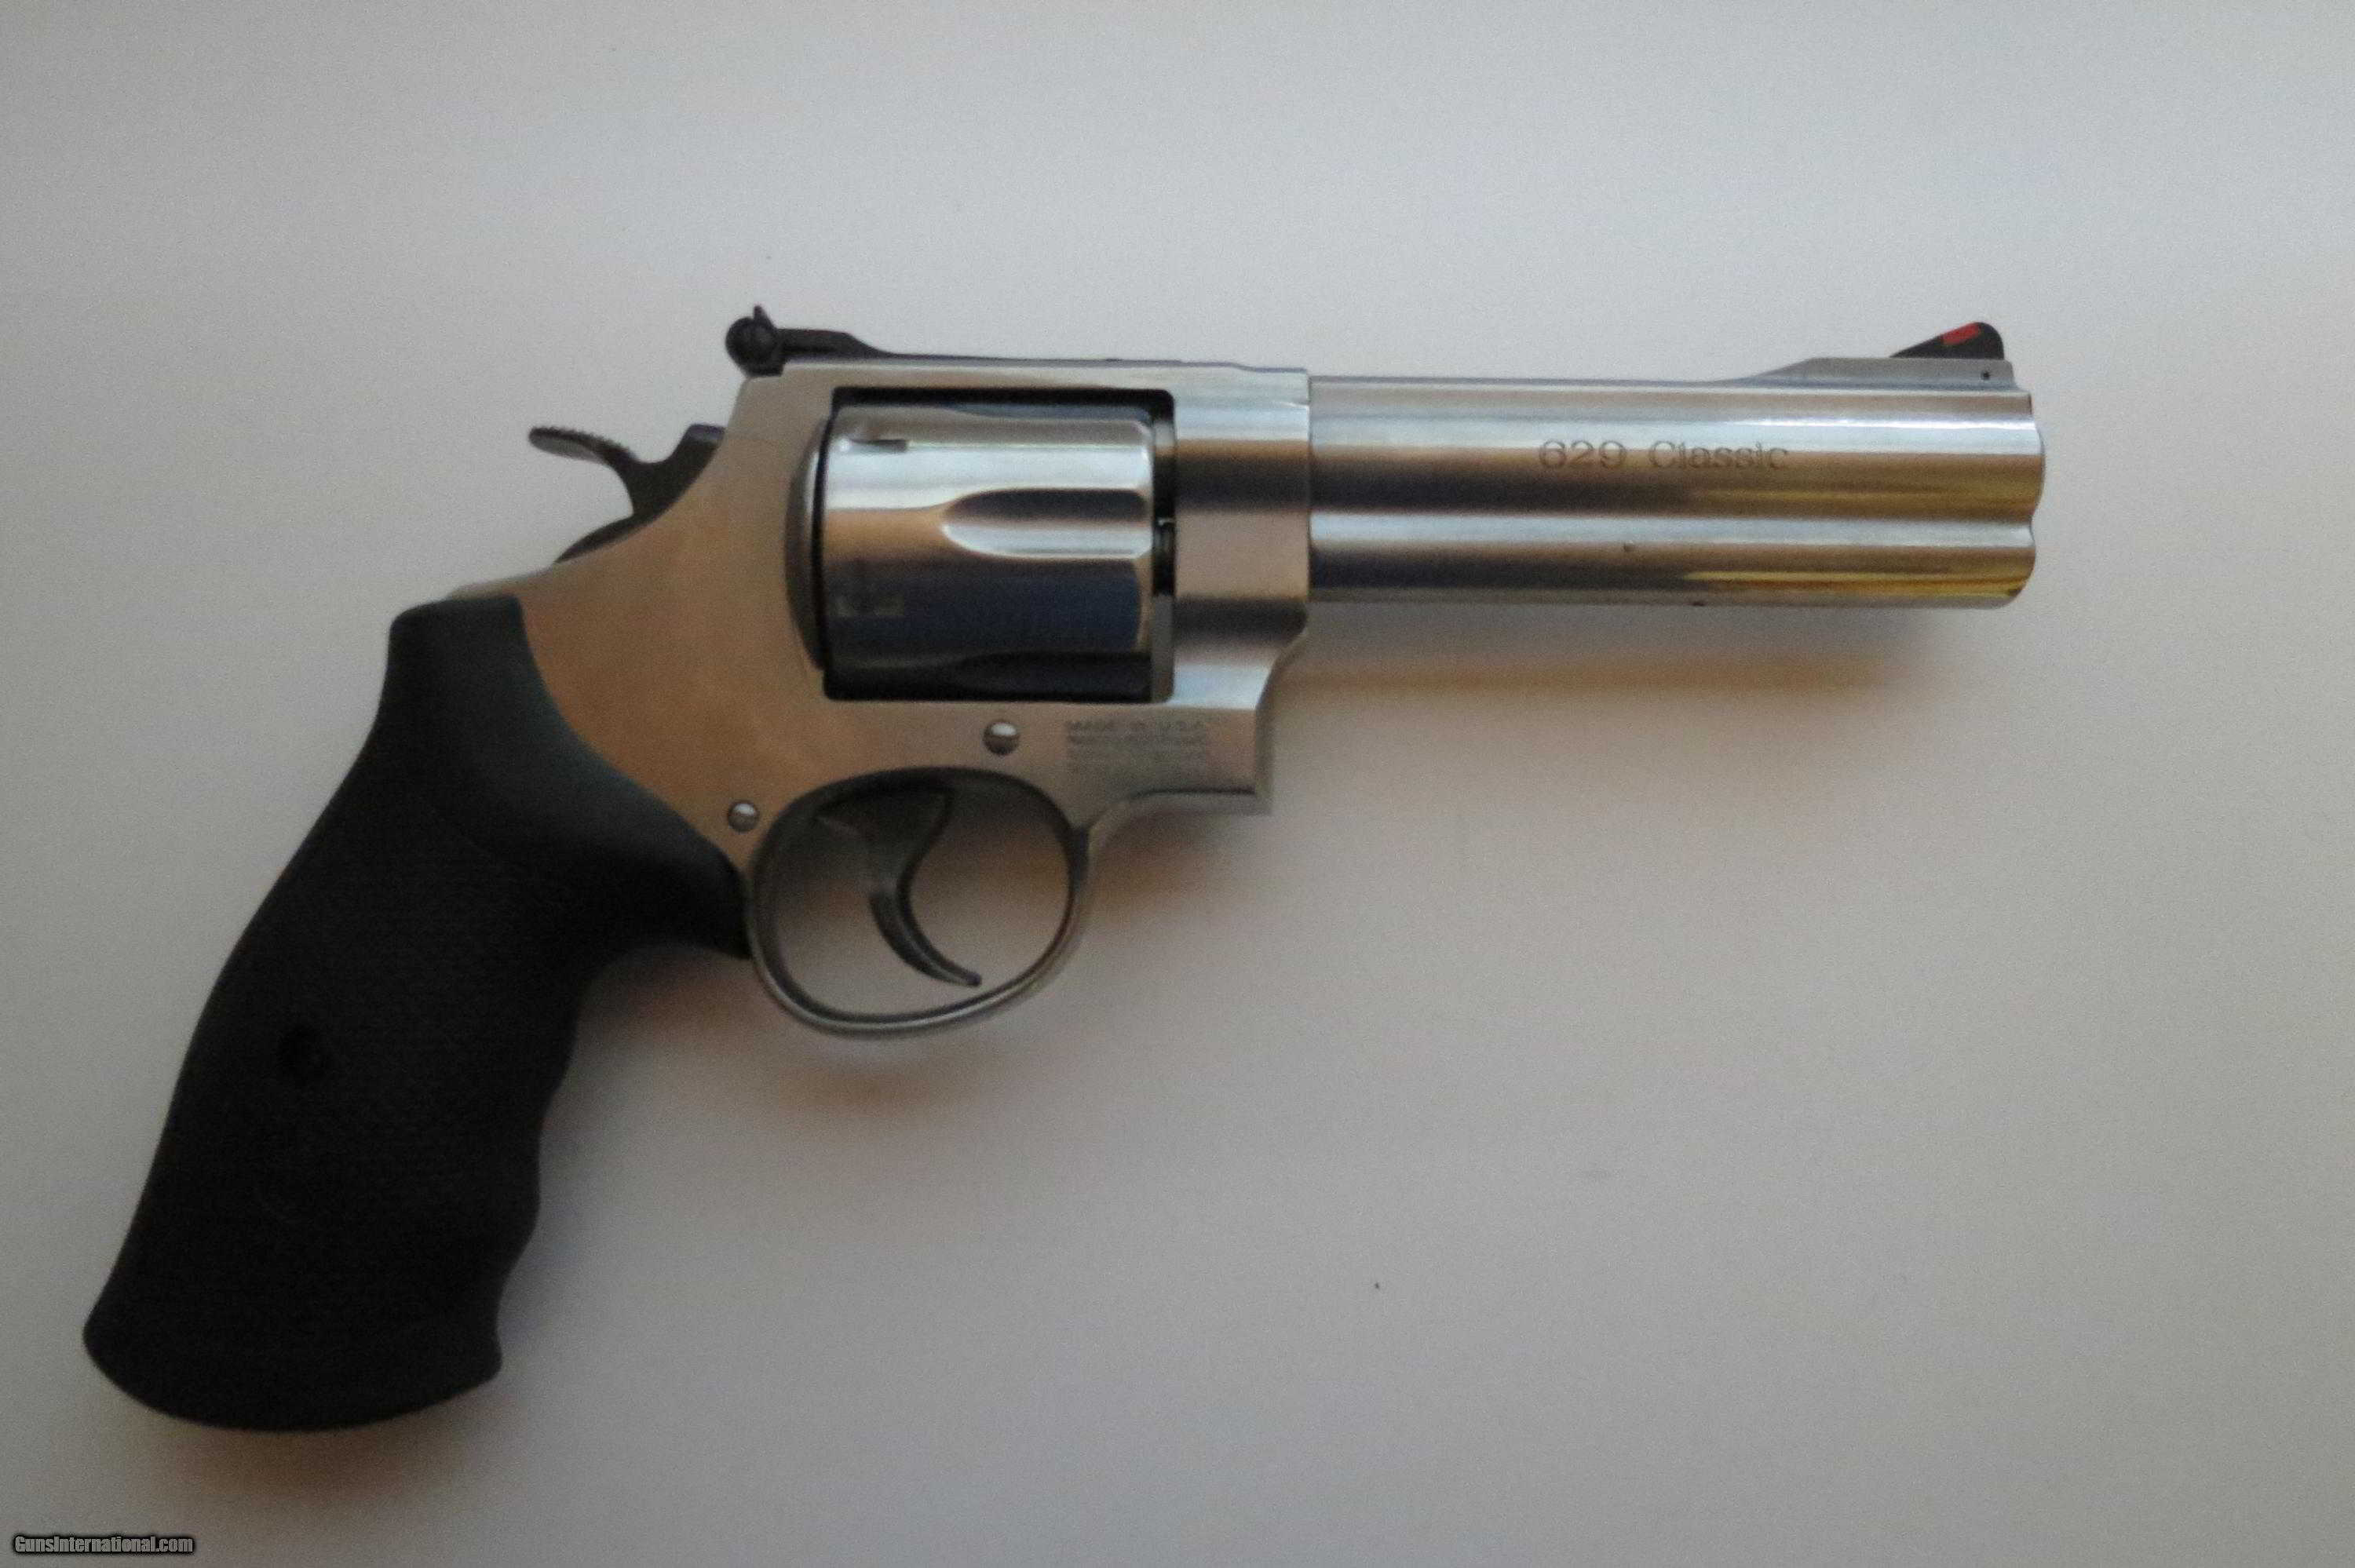 Smith & Wesson 629-6 44 Mag. 5